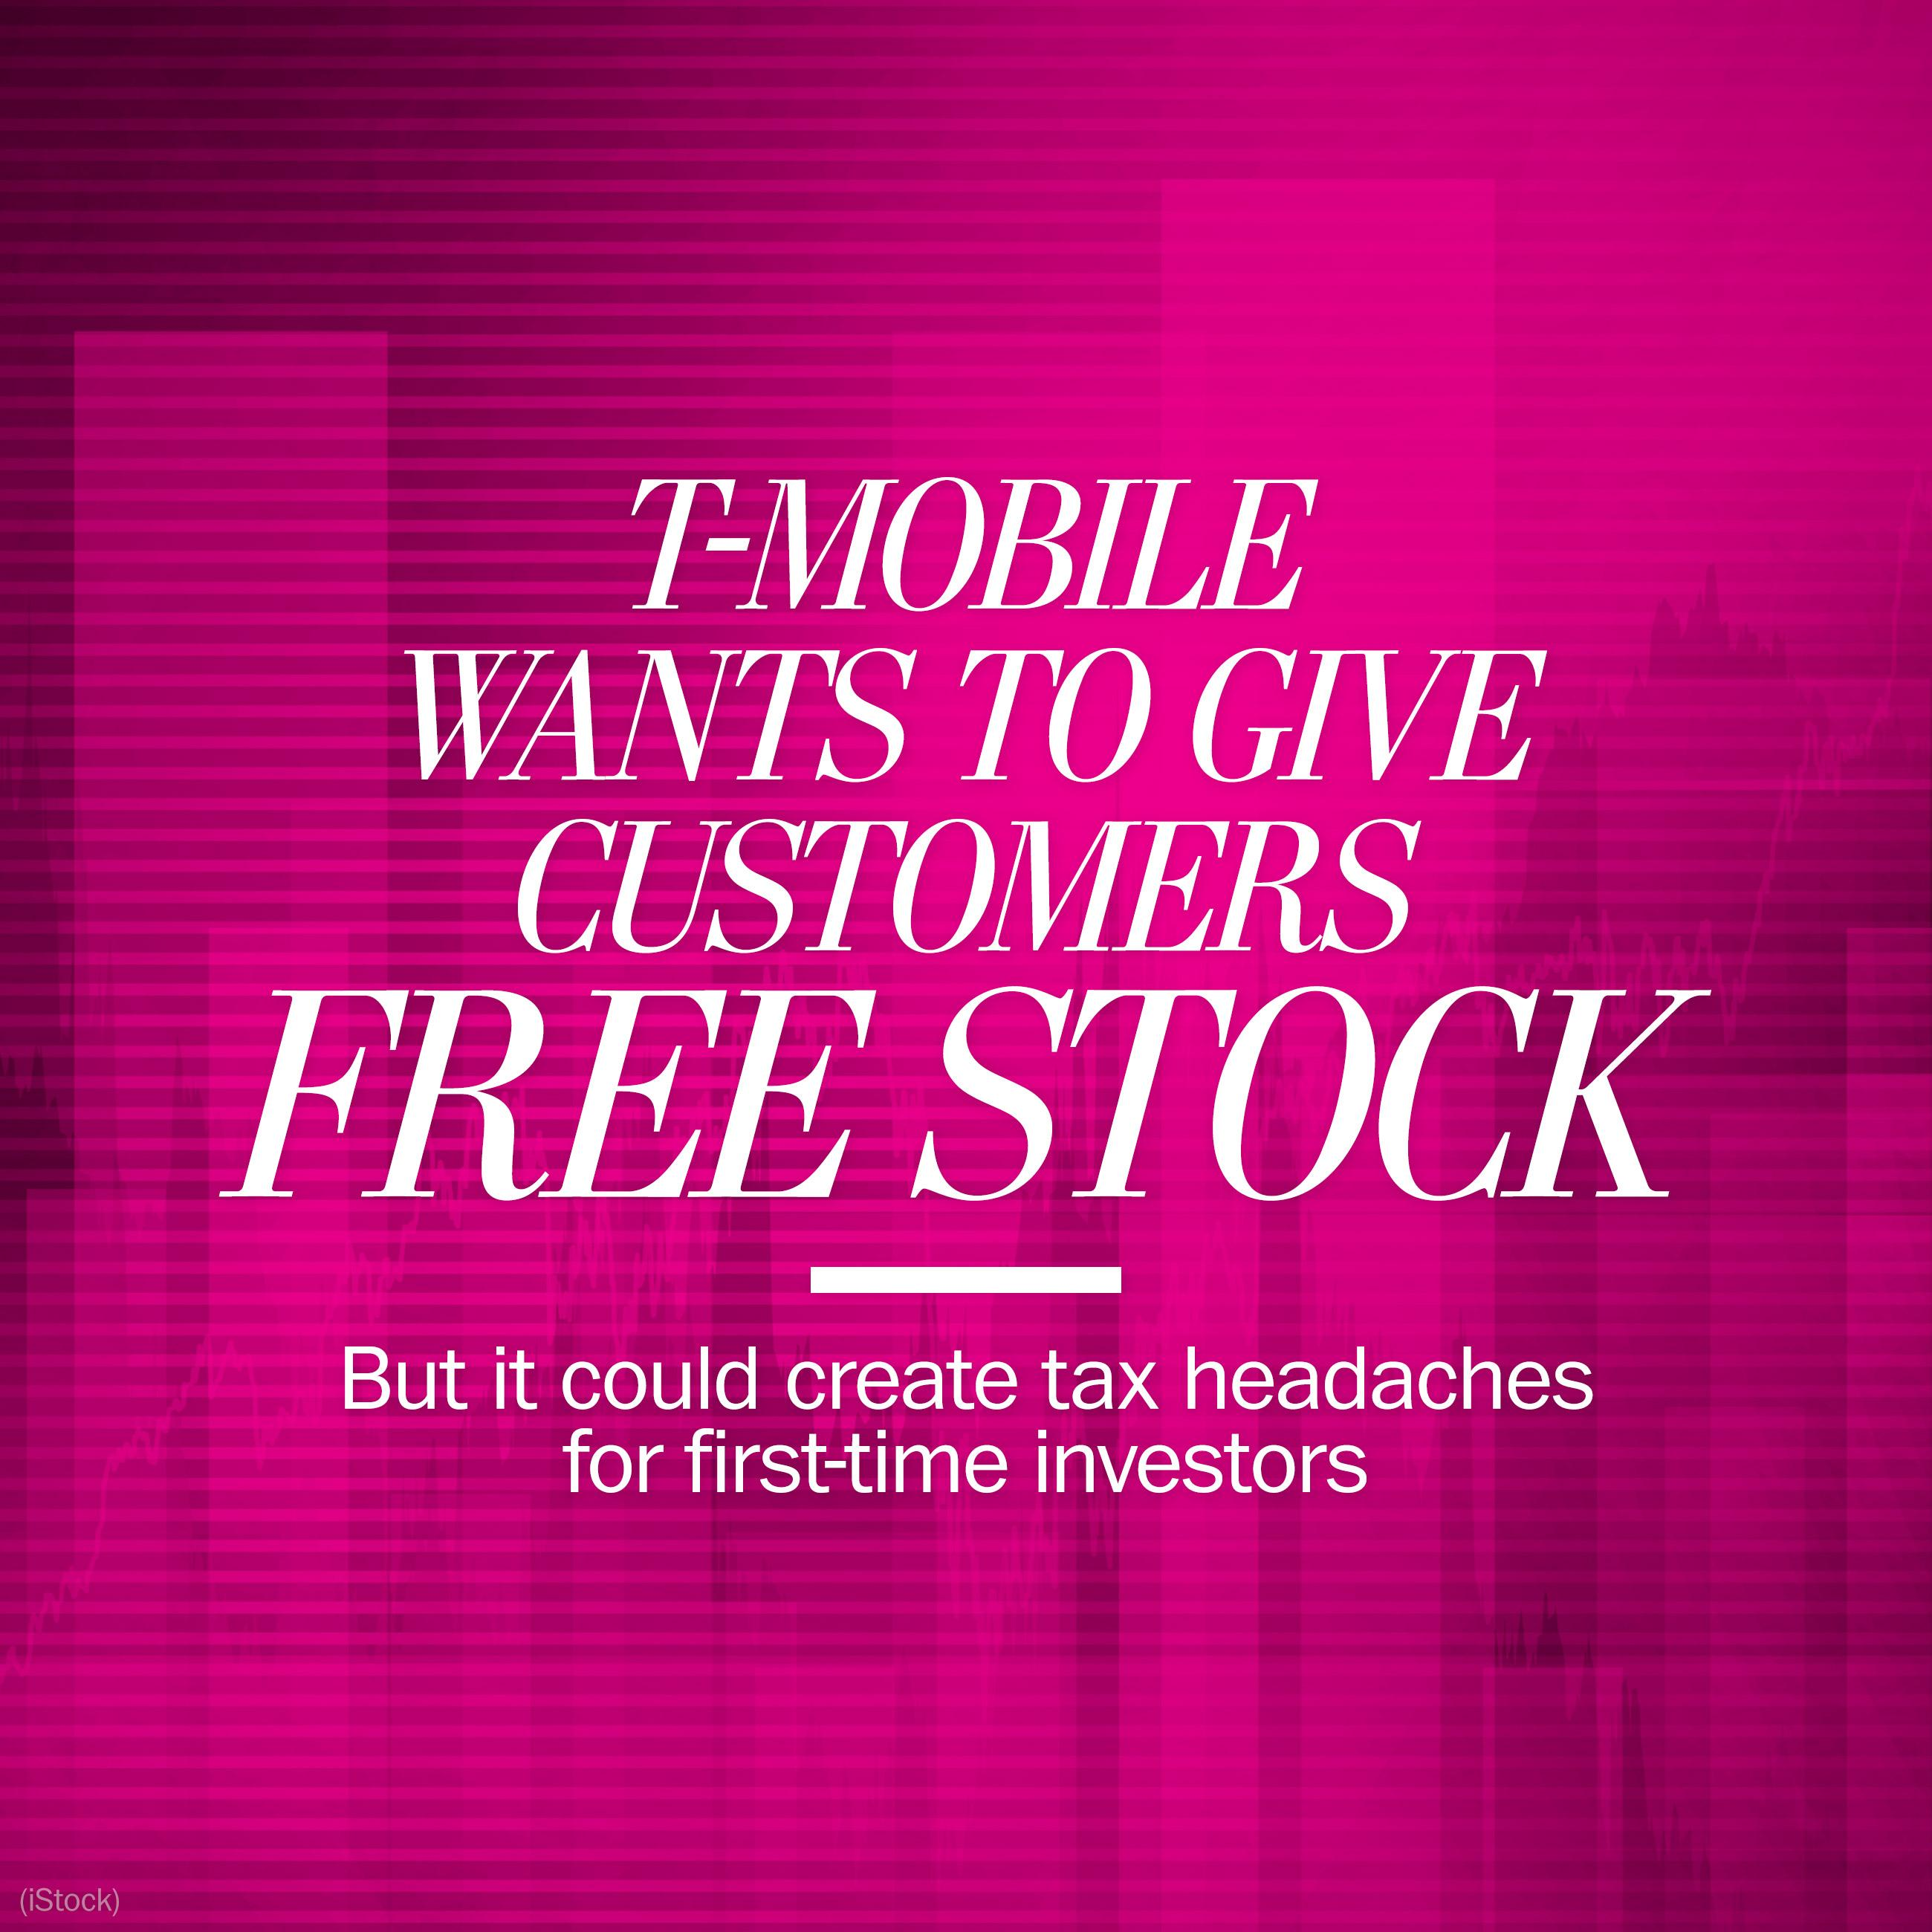 T-Mobile is giving away free stock — but it could also lead to a tax headache